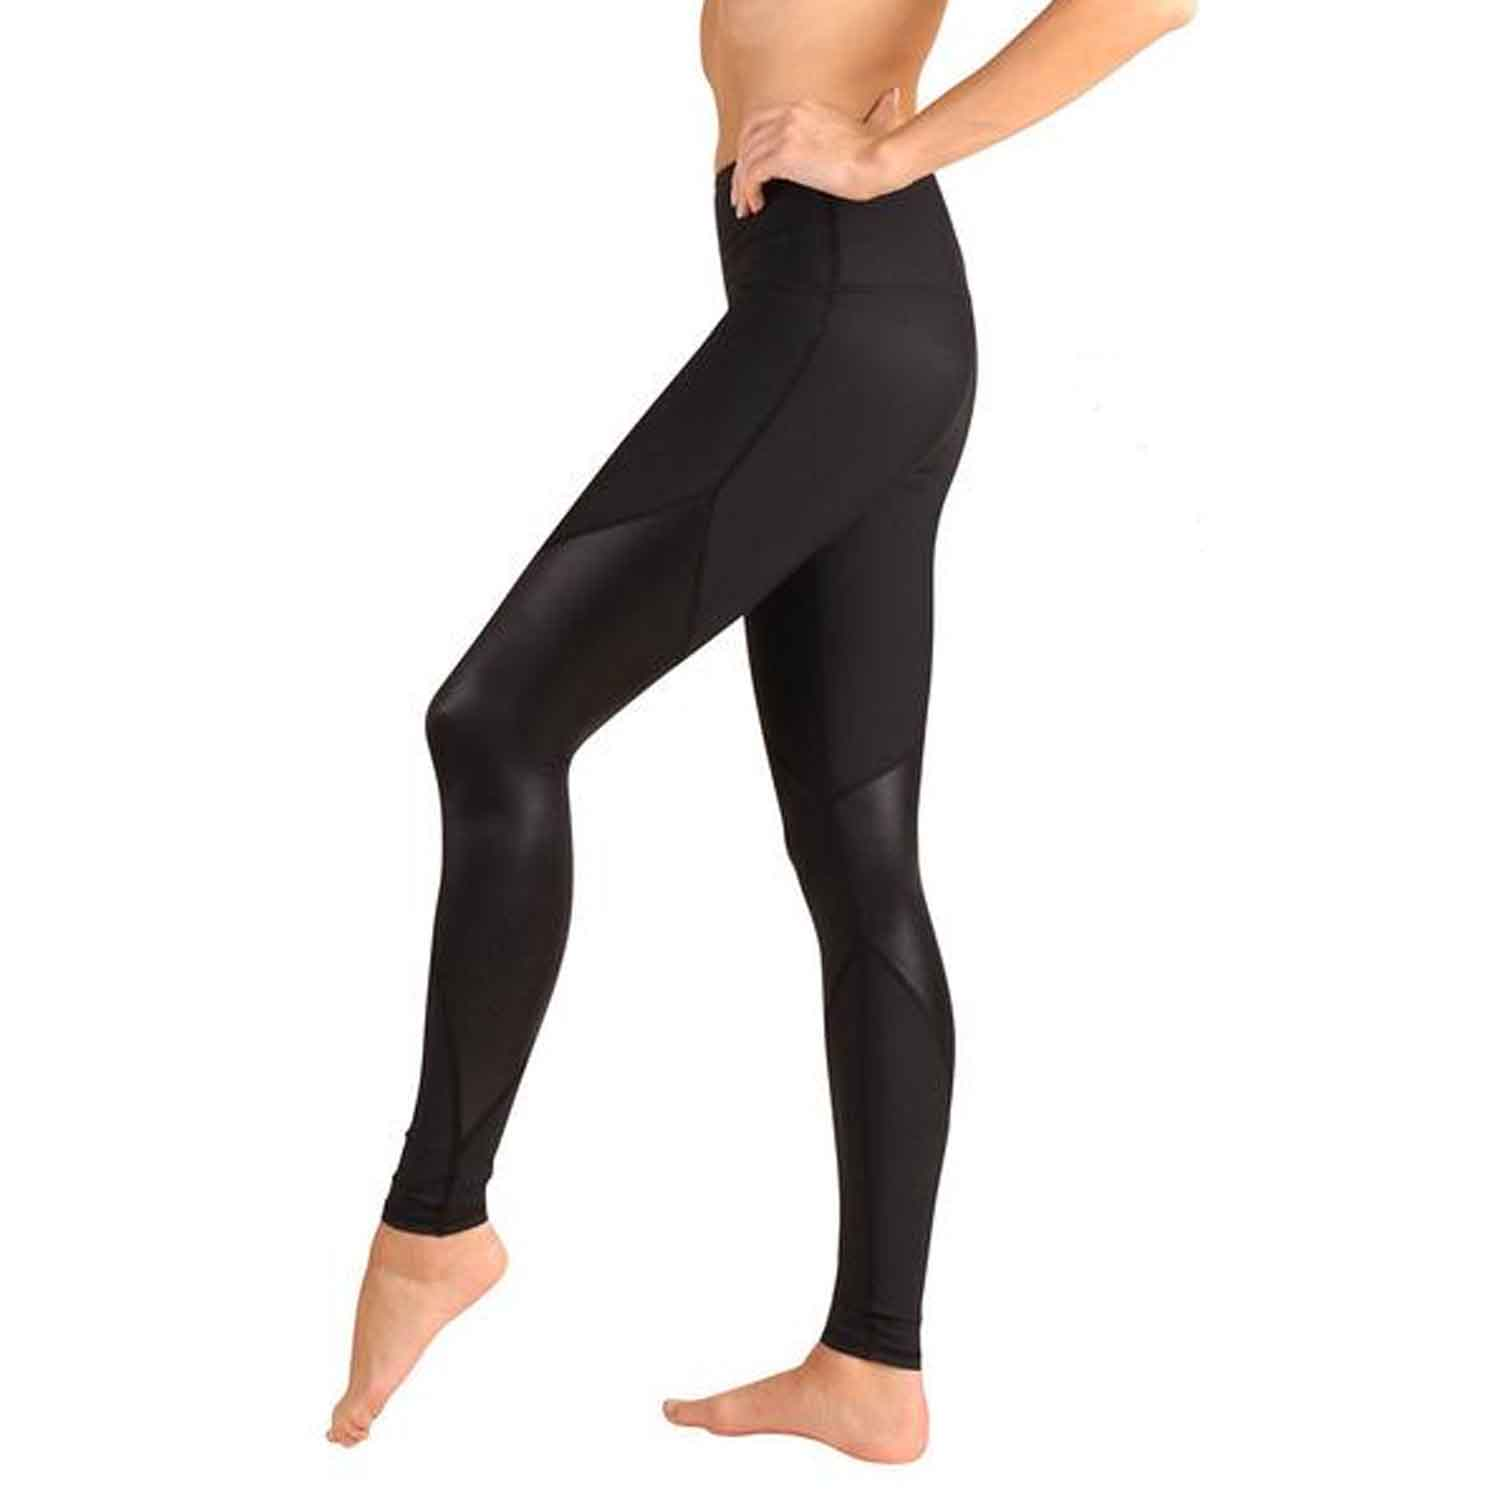 Trinity Urban Legging ,  Agathos Athleisure  $90  *use code  CHIC20  for 20% off*